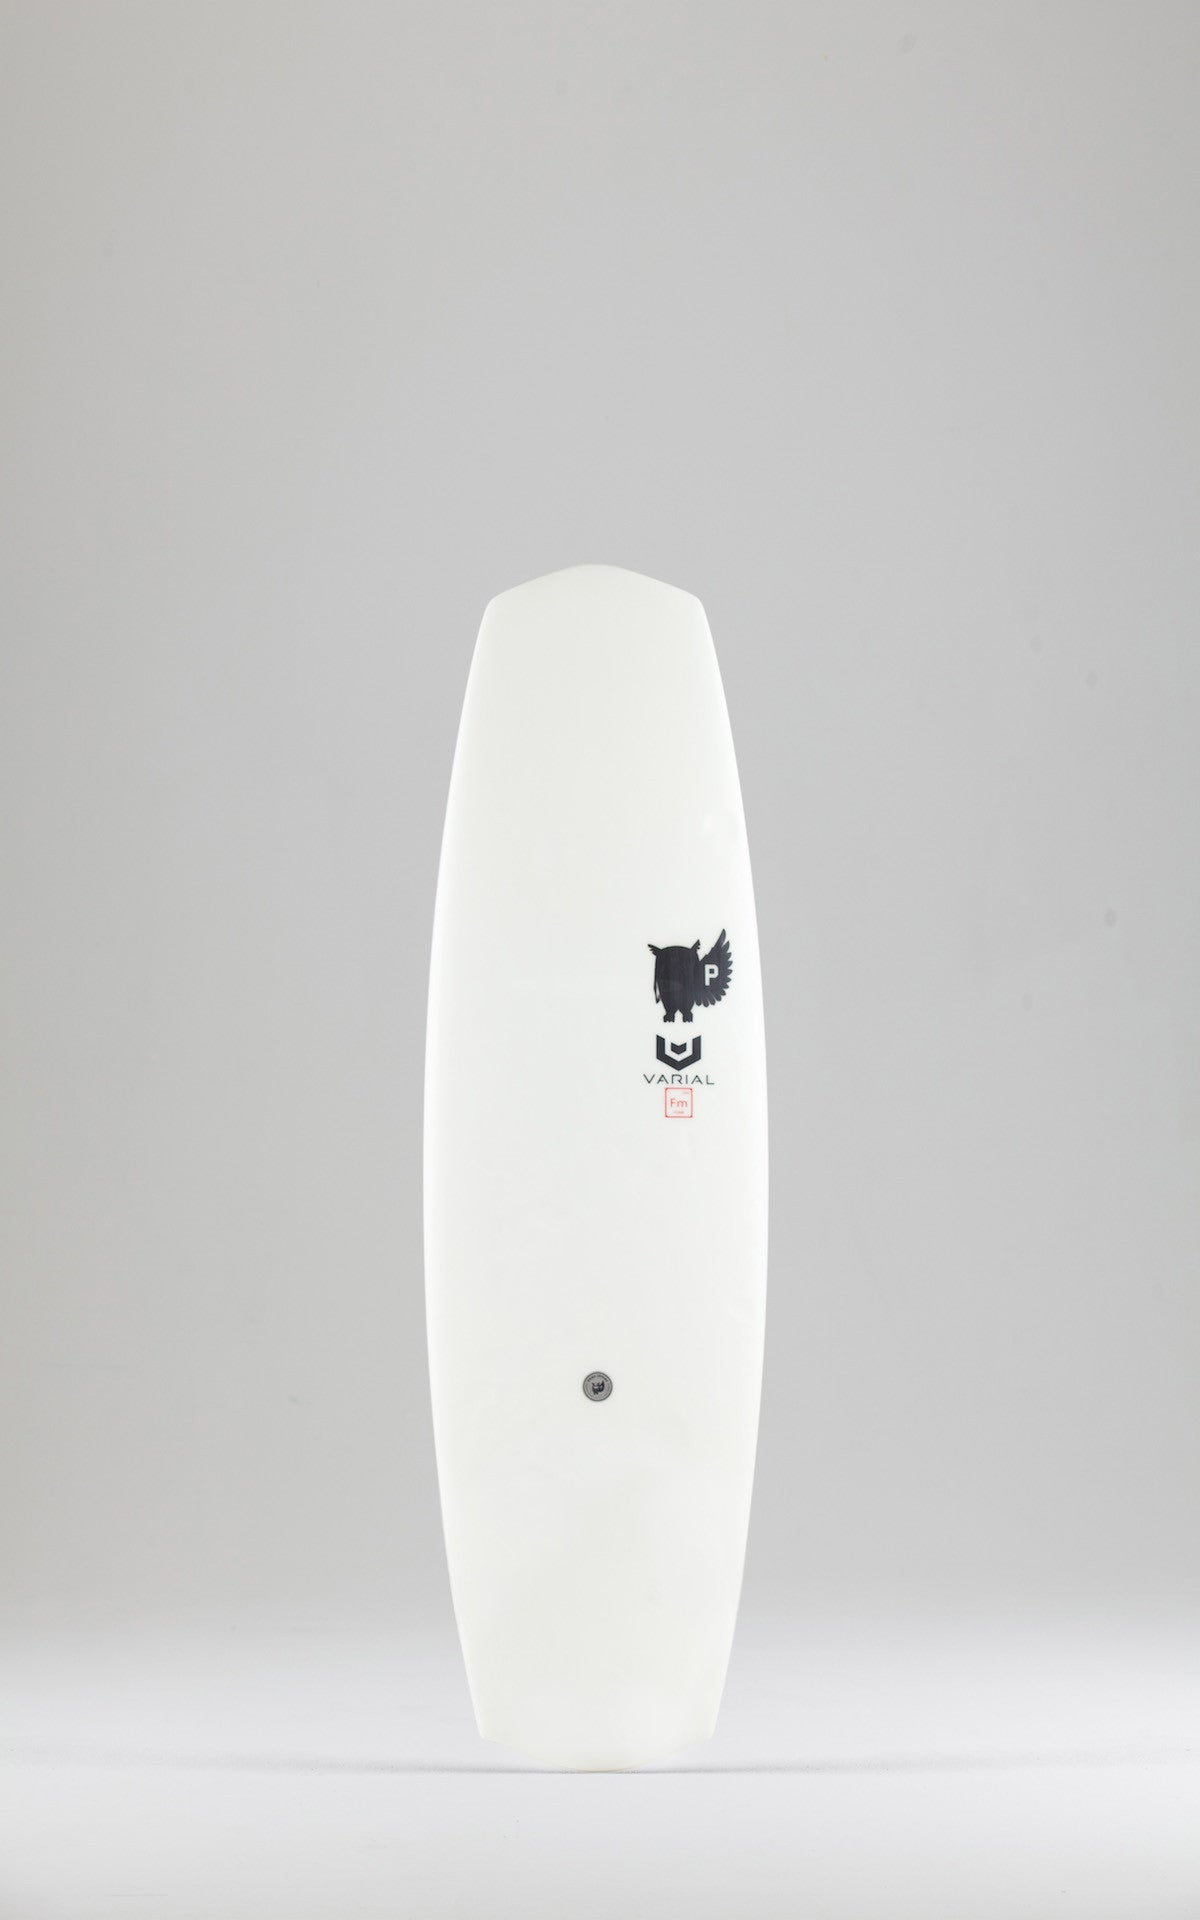 PIETY Surfboards - Bandwagon